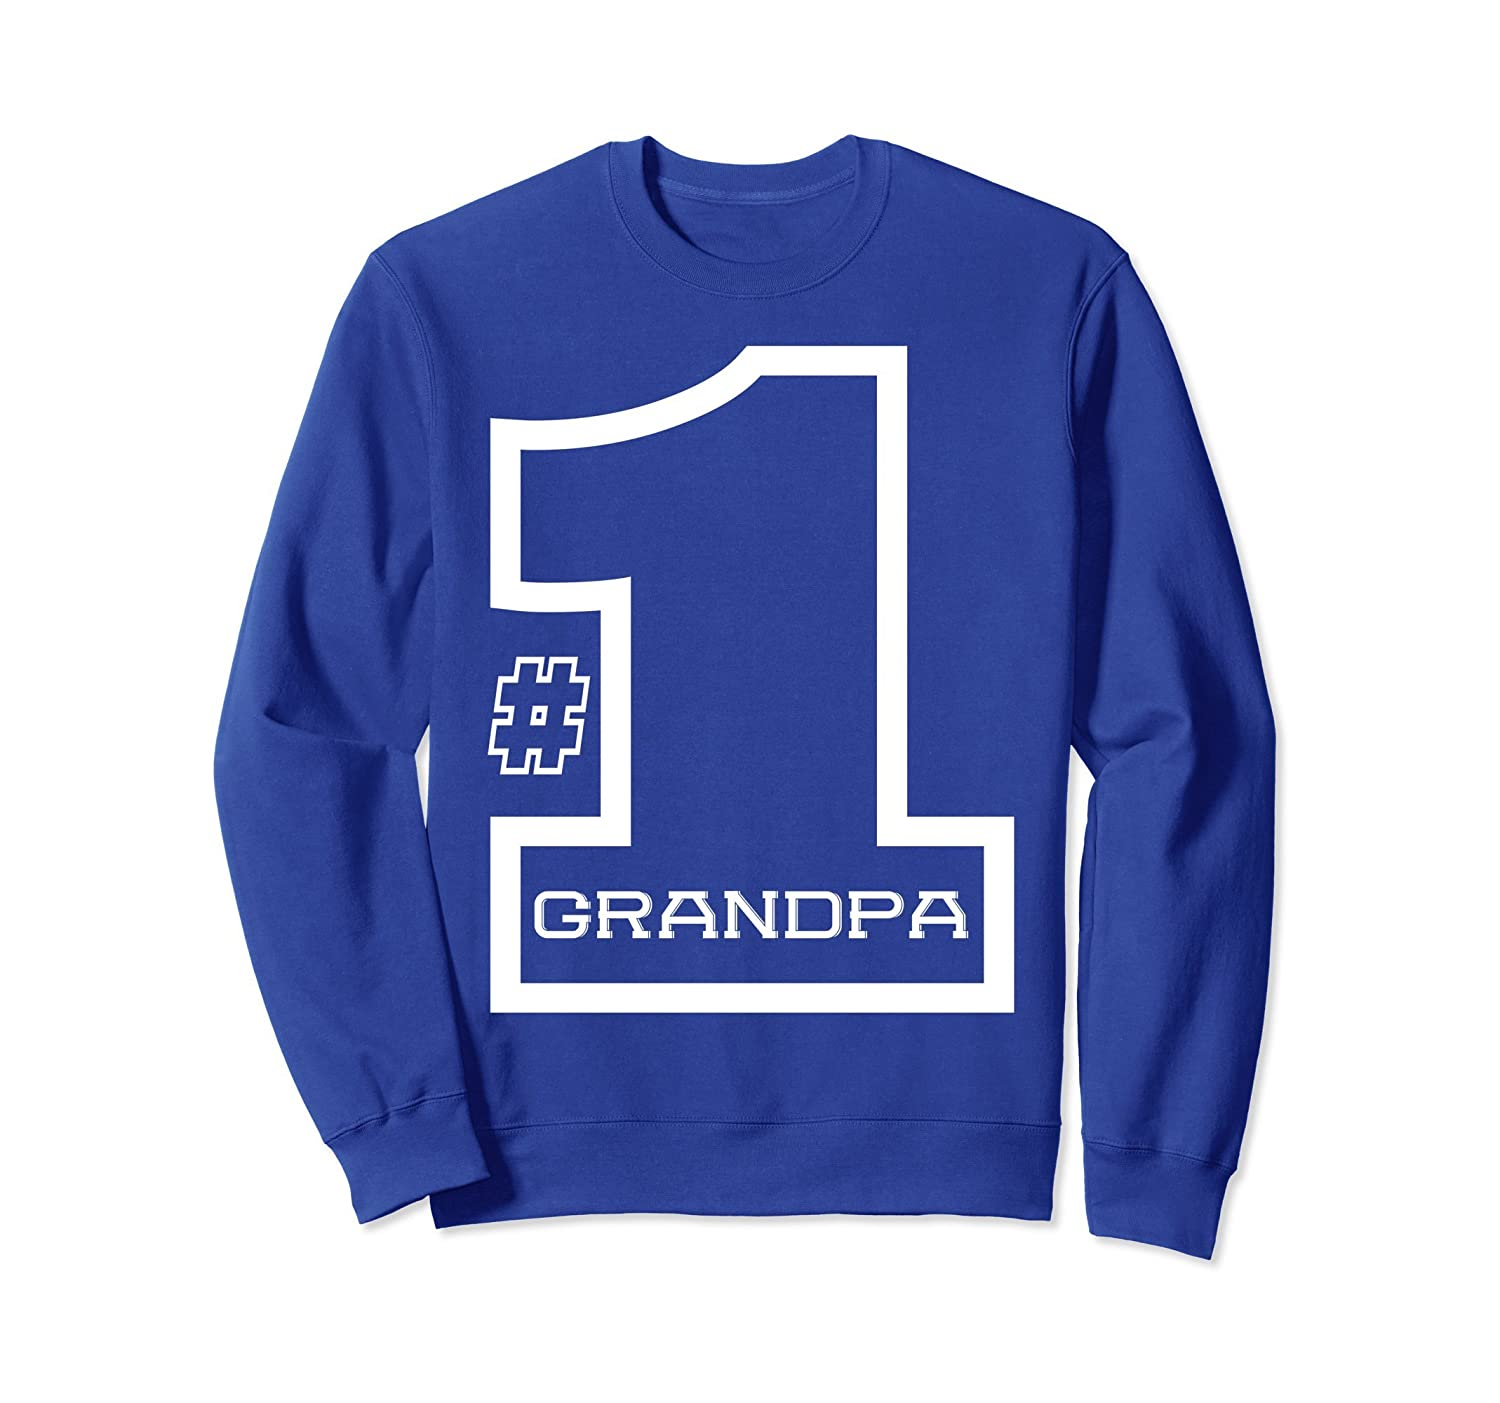 #1 Grandpa Number One Sweatshirt Father's day Gift for Papa- TPT